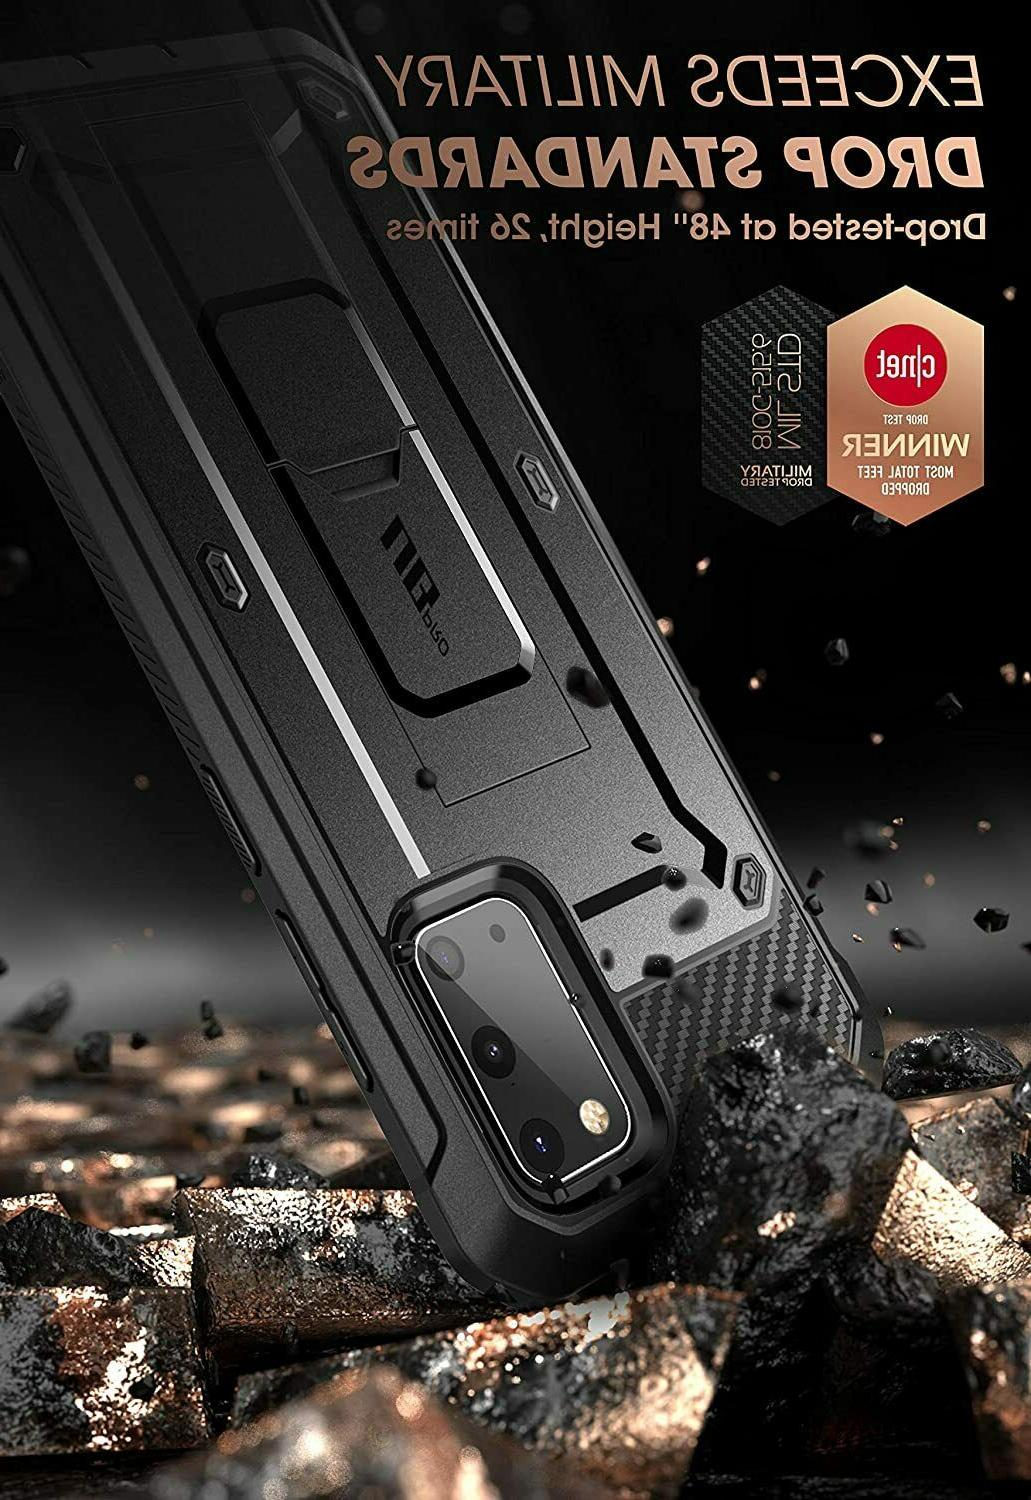 SUPCASE Case Stand Cover for Samsung Galaxy S20 FE